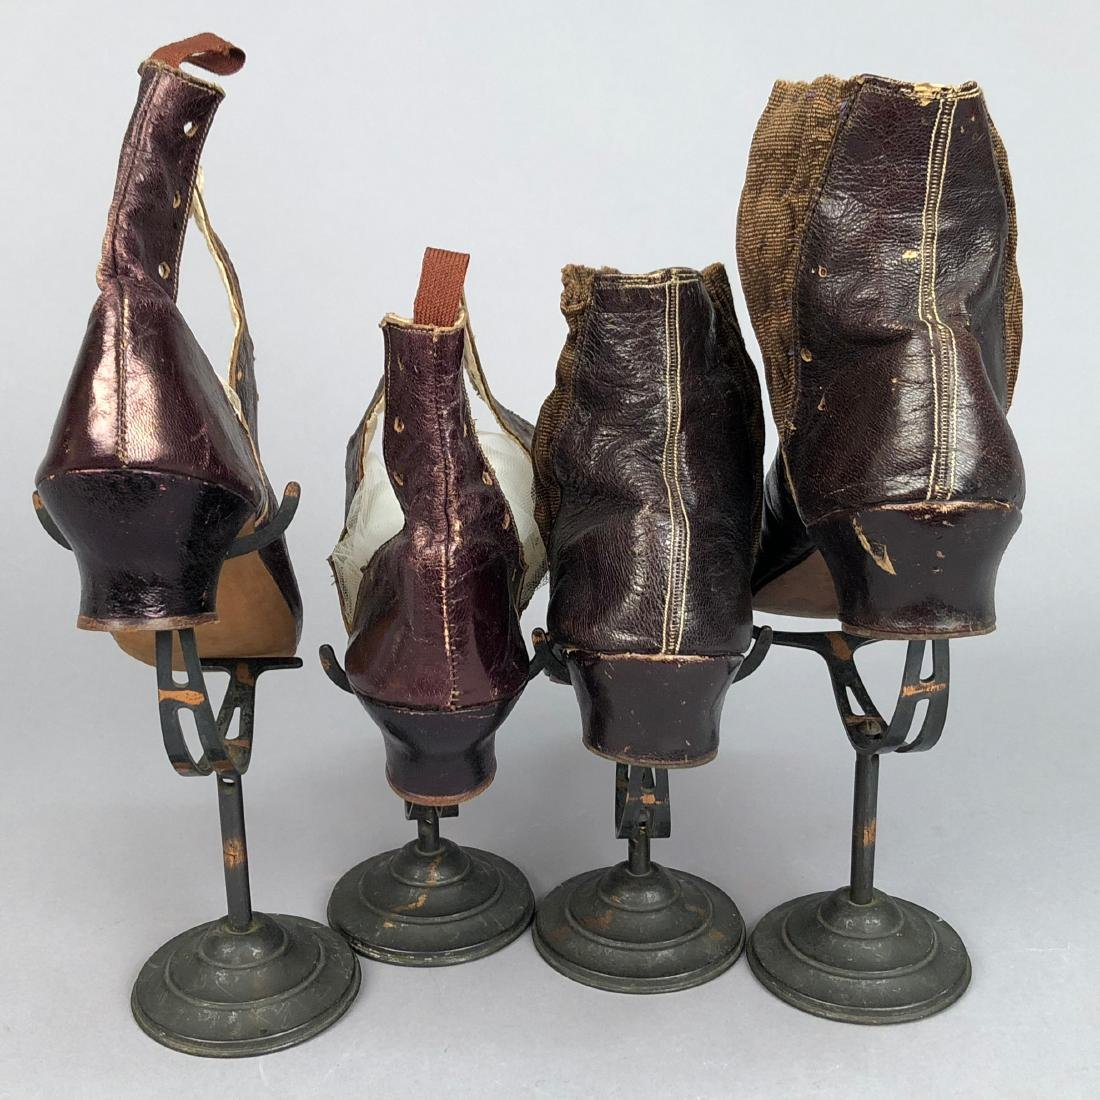 EMBROIDERED BOOTS with ELASTIC INSET, 1850s - 4